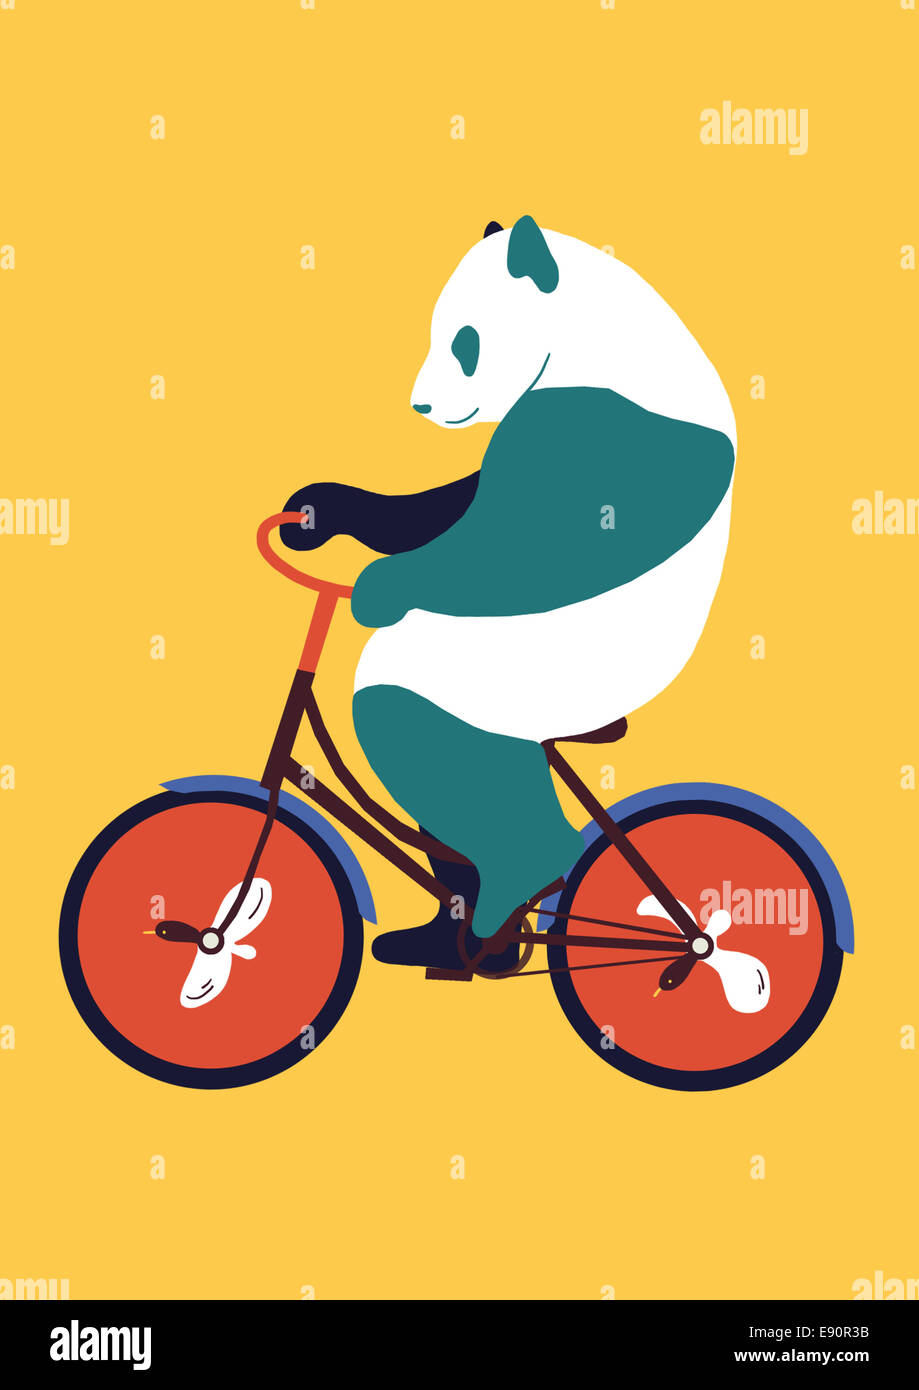 Illustration of a riding panda - Stock Image